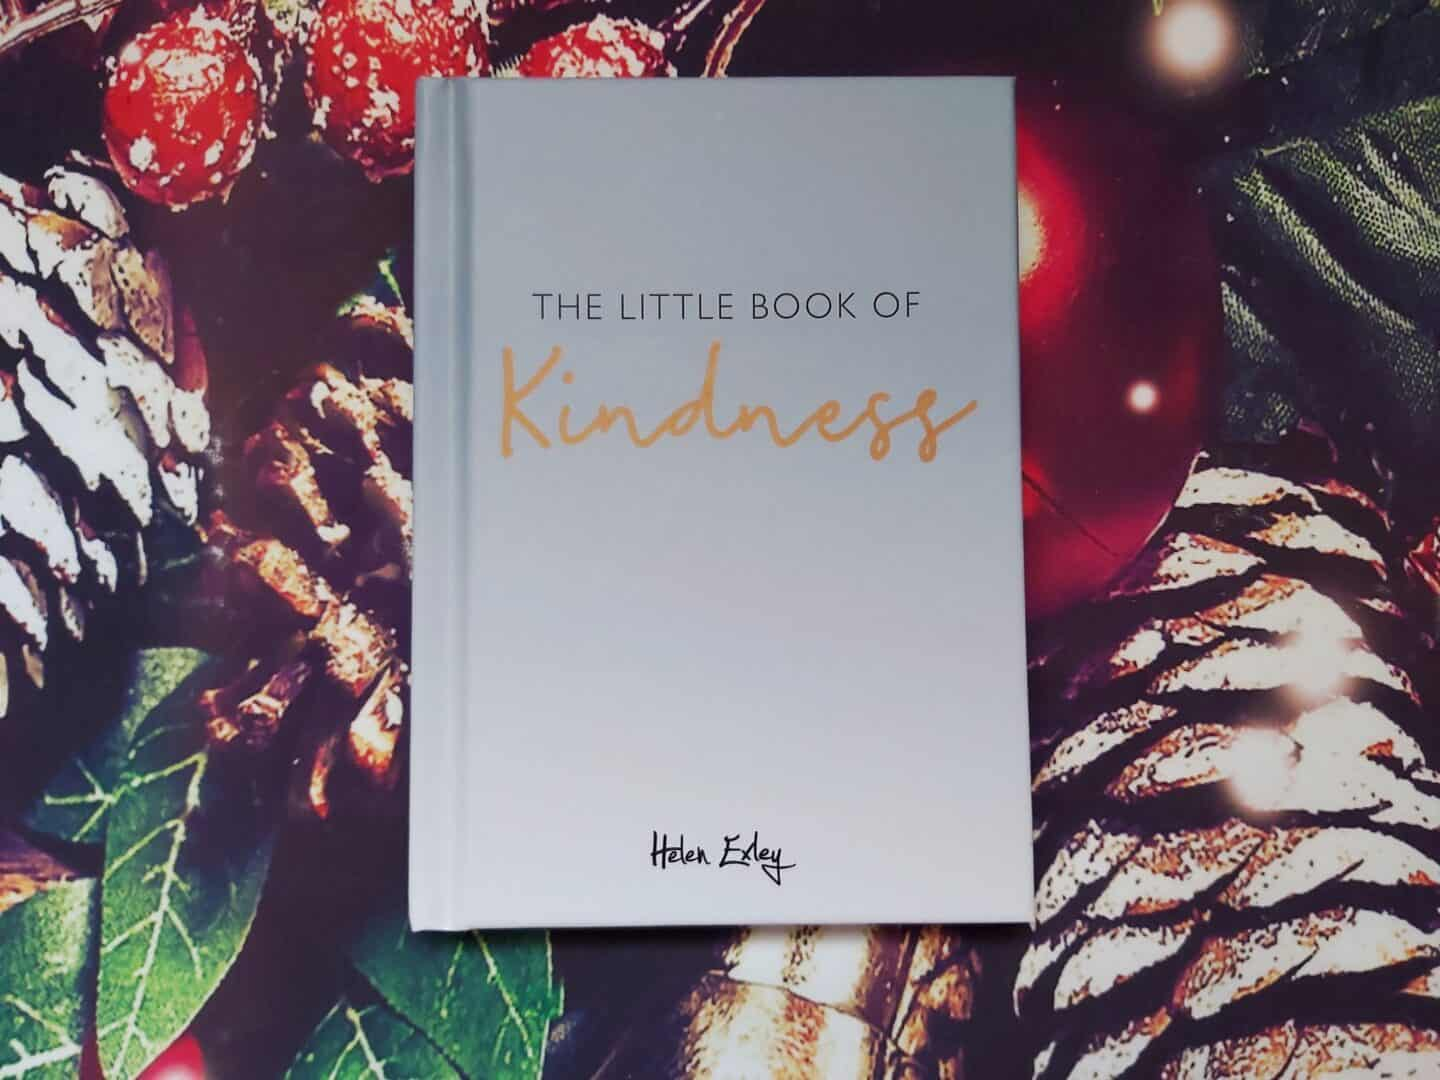 The Little Book Of Kindness by Helen Exley - small book on festive background